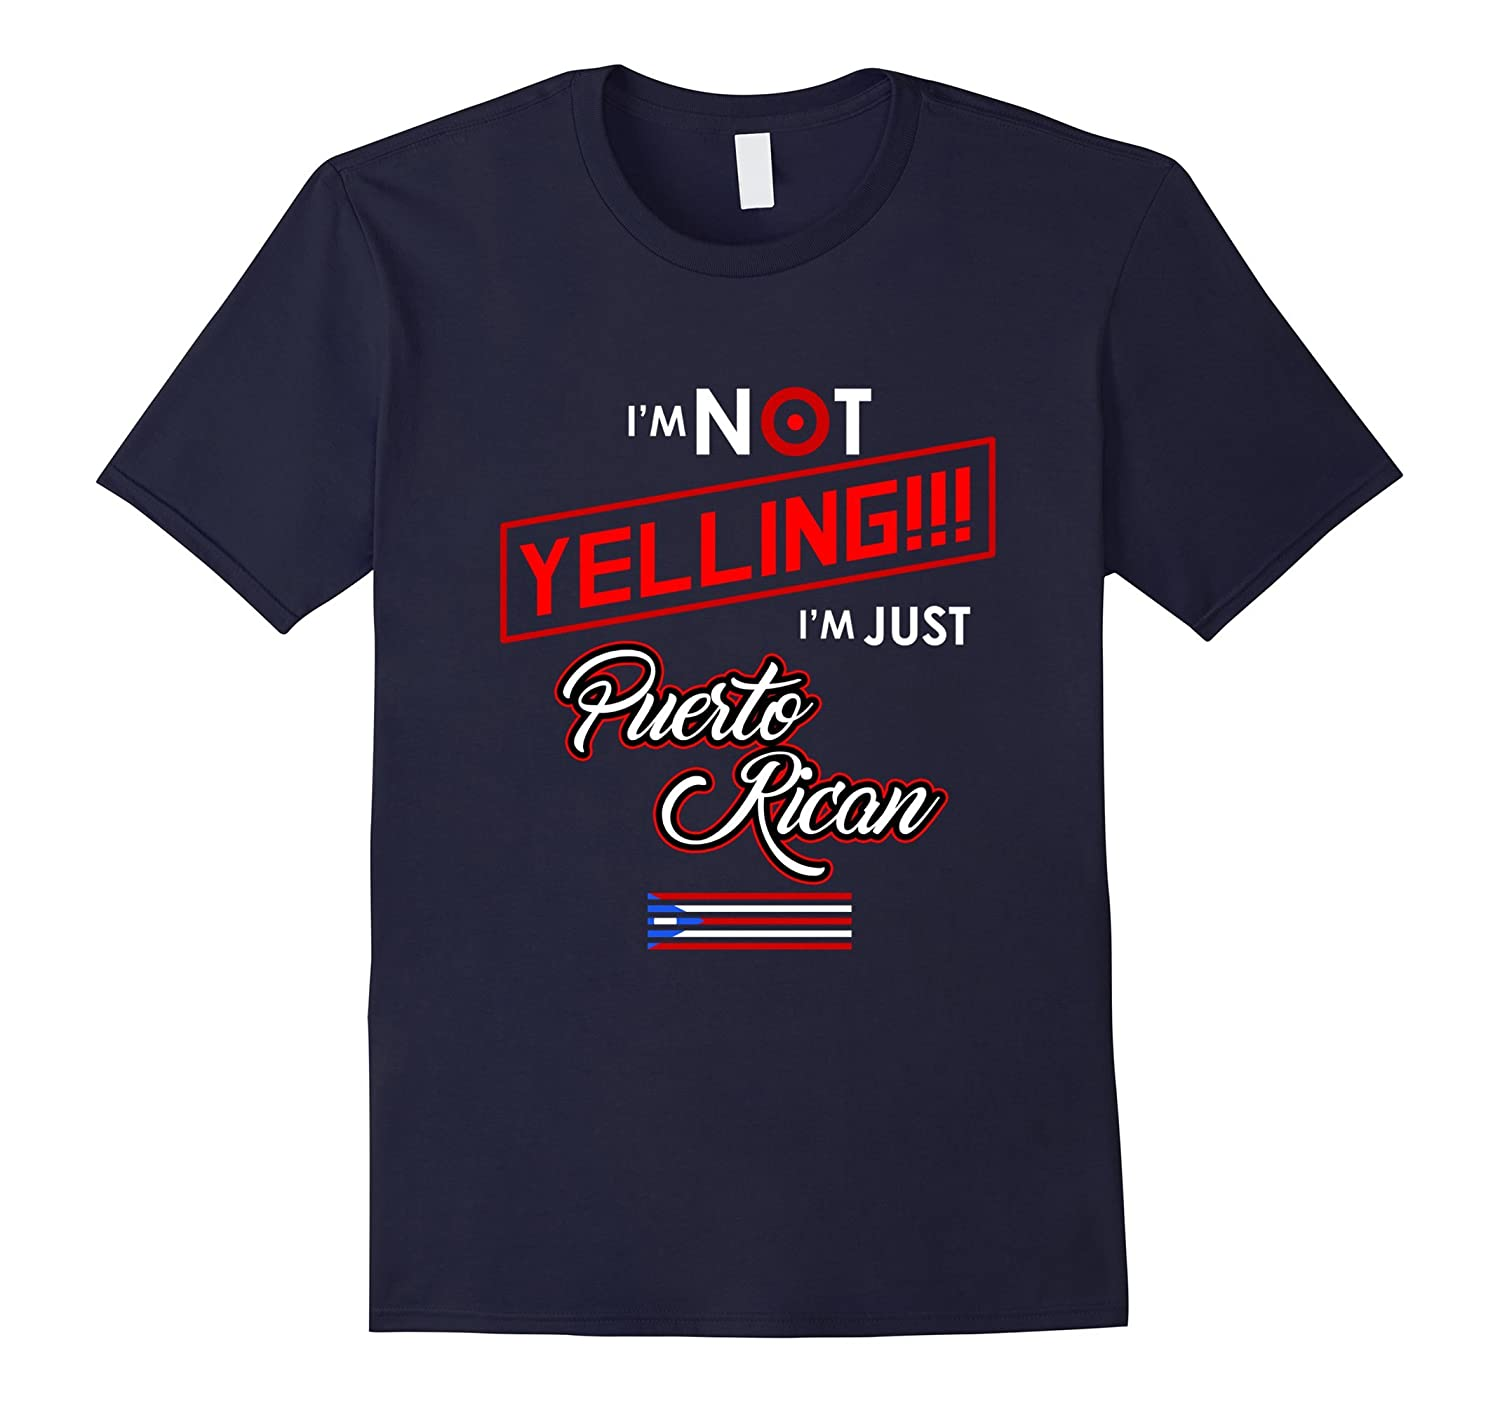 'I'm Not Yelling, I'm Puerto Rican' Loud Funny Tee Shirt-TH